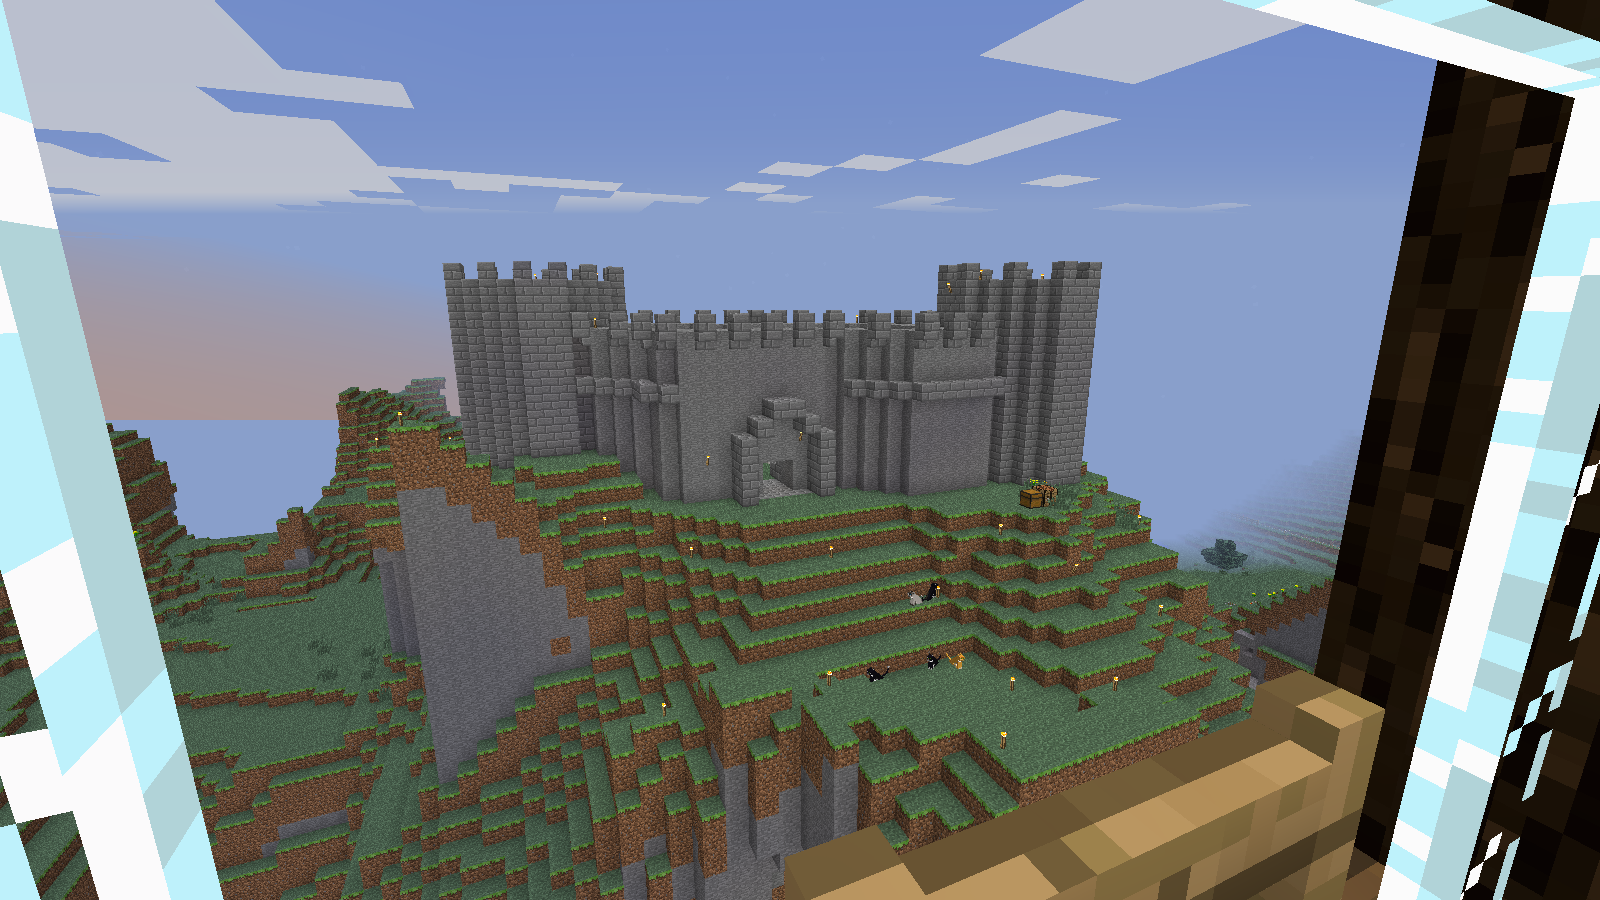 screencap of grey-stone castle with two towers of cobblestone and linking walls with stone